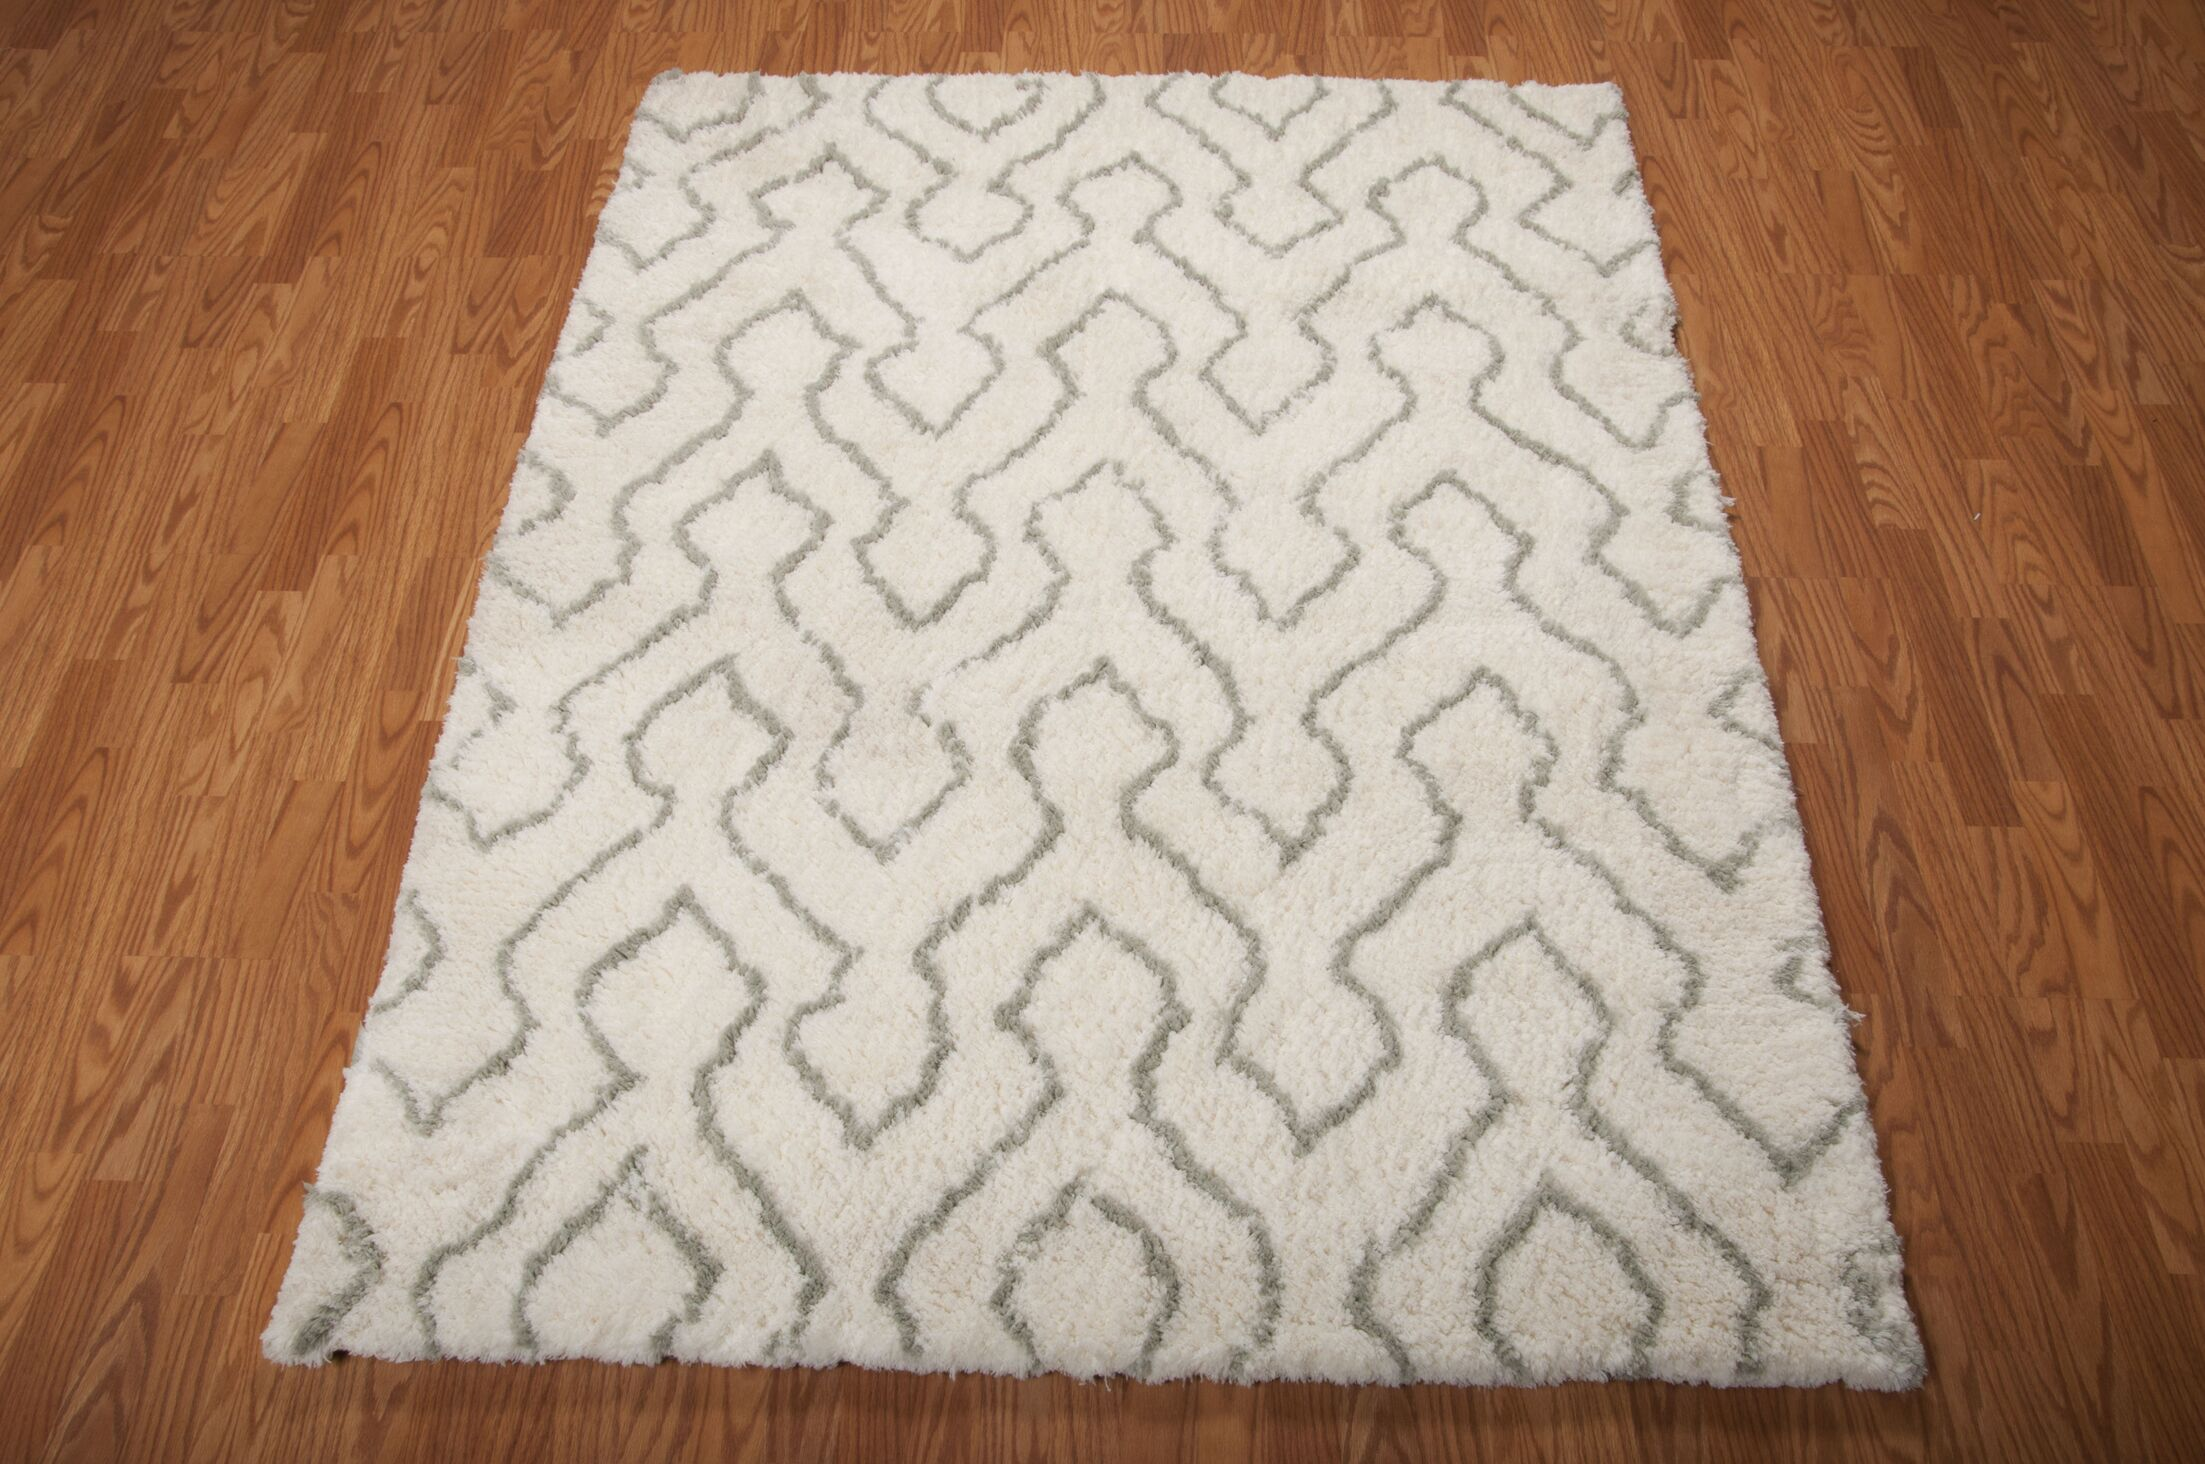 North Moore Hand-Tufted Ivory/Sage Area Rug Rug Size: Rectangle 5' x 7'